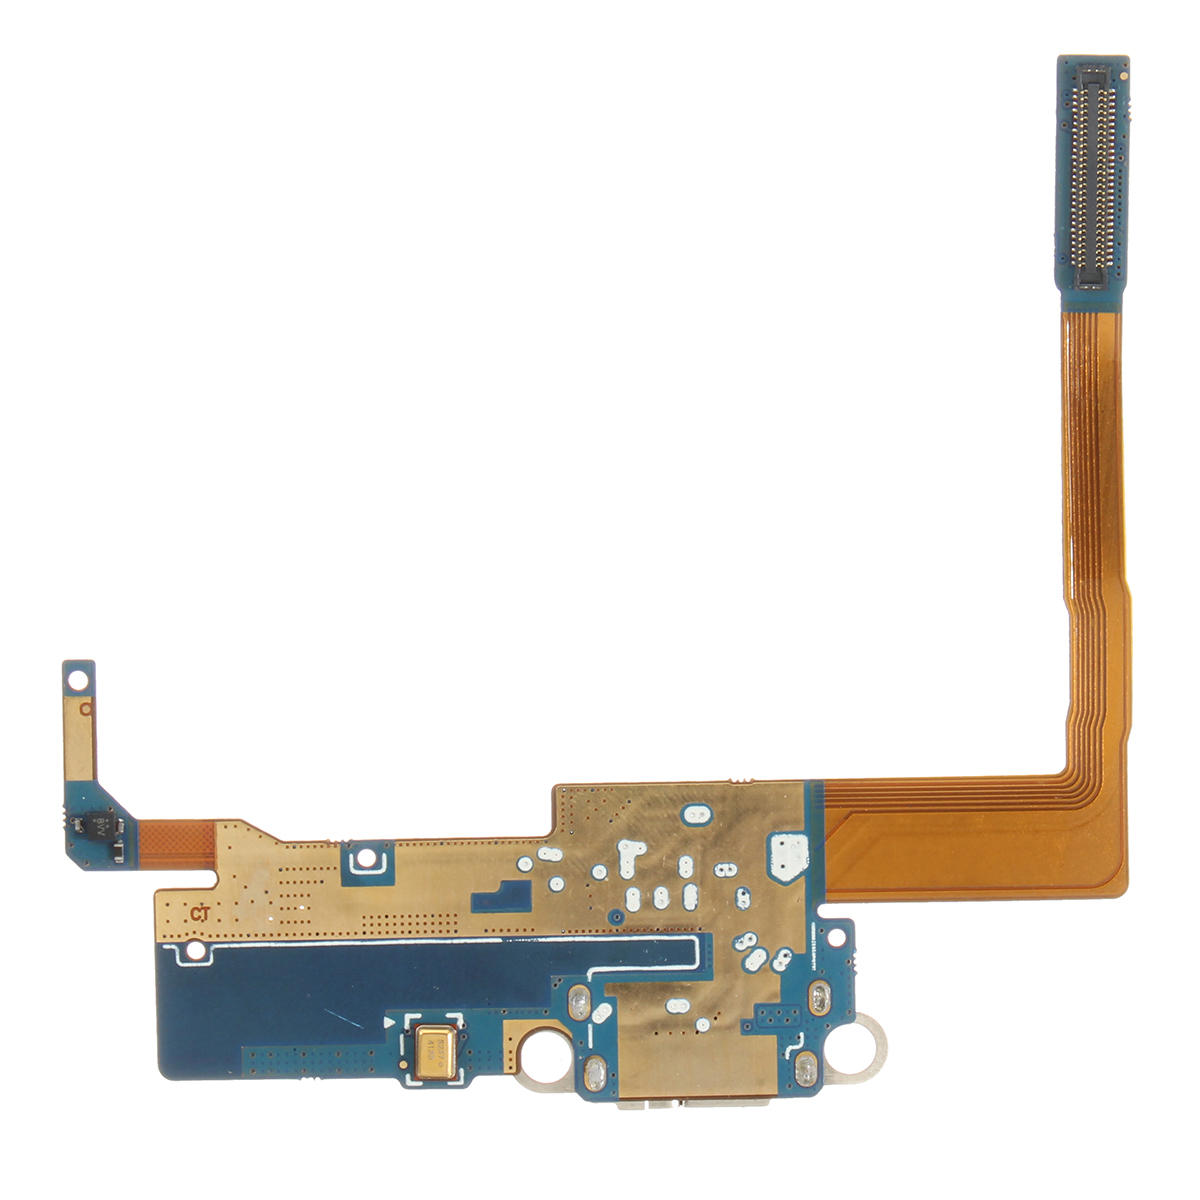 USB-laadstation Dock Flex Cable voor Samsung Galaxy Note 3 Verizon N900V